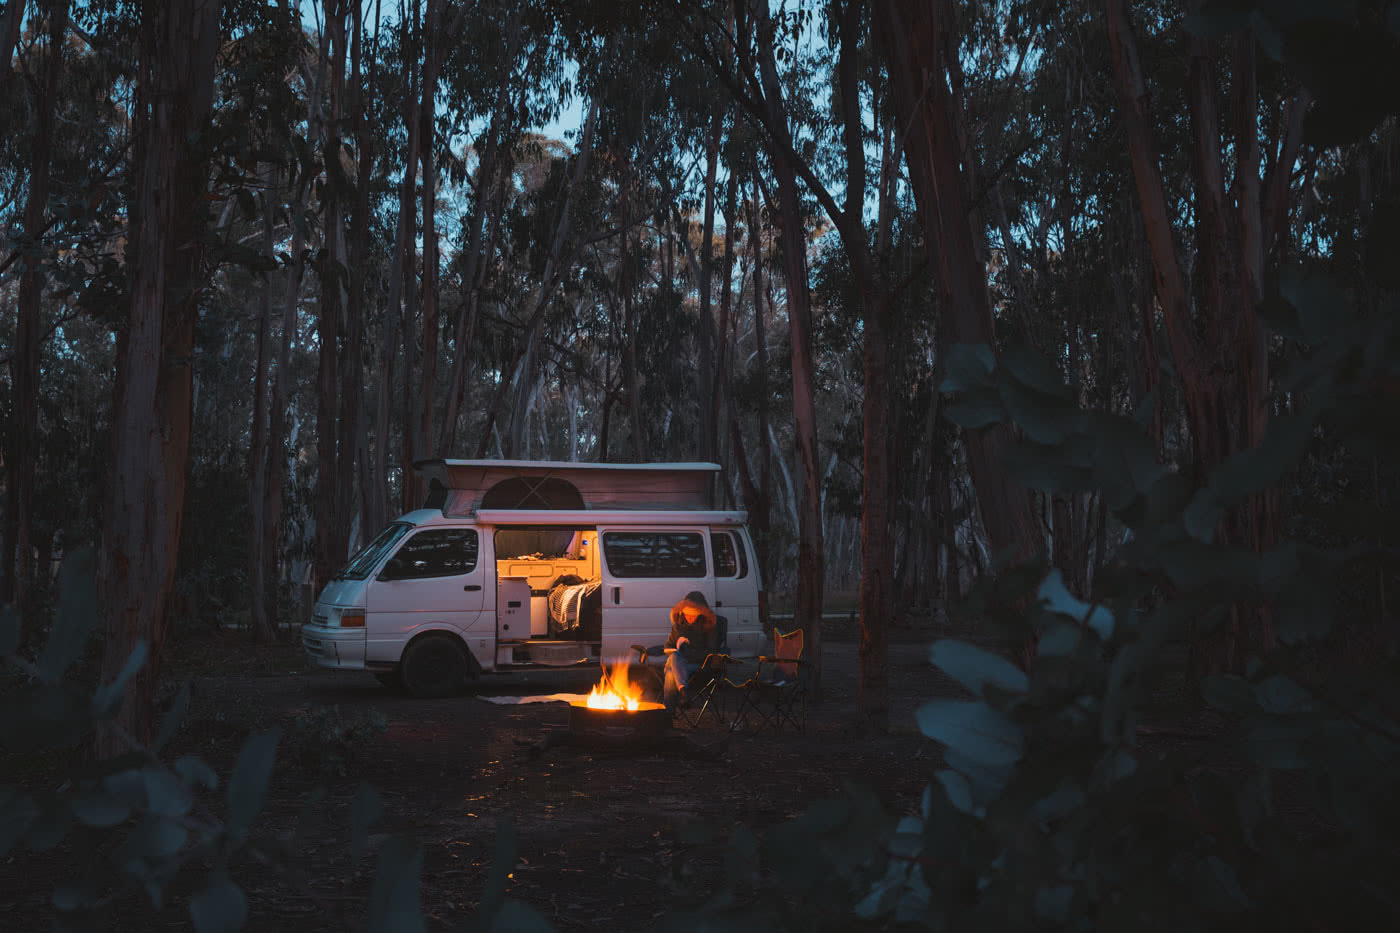 5 Camping Getaways Near Adelaide Jack Brookes, campsite, van, campfire, forest